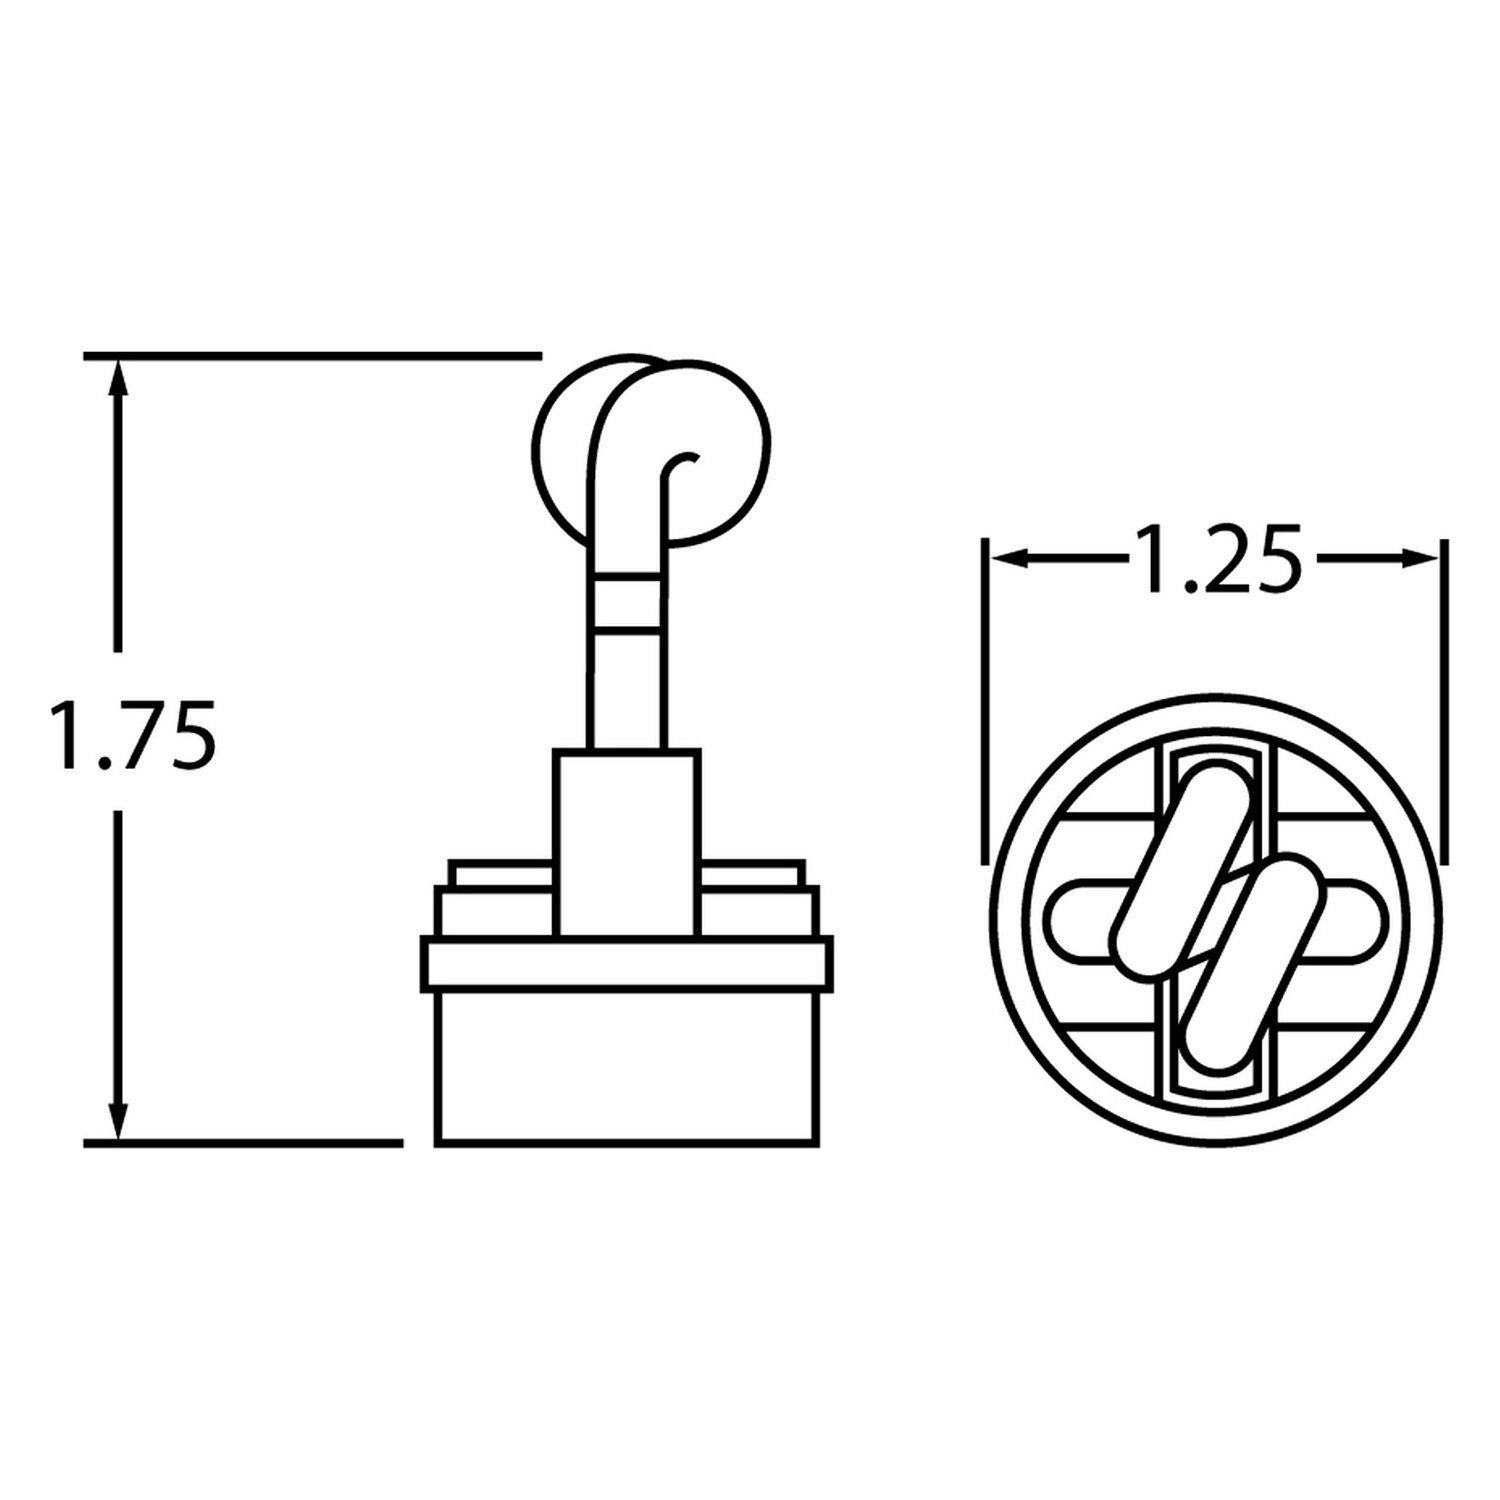 Wiring Diagram For Signal Stat 700 Signal Stat 620 Light